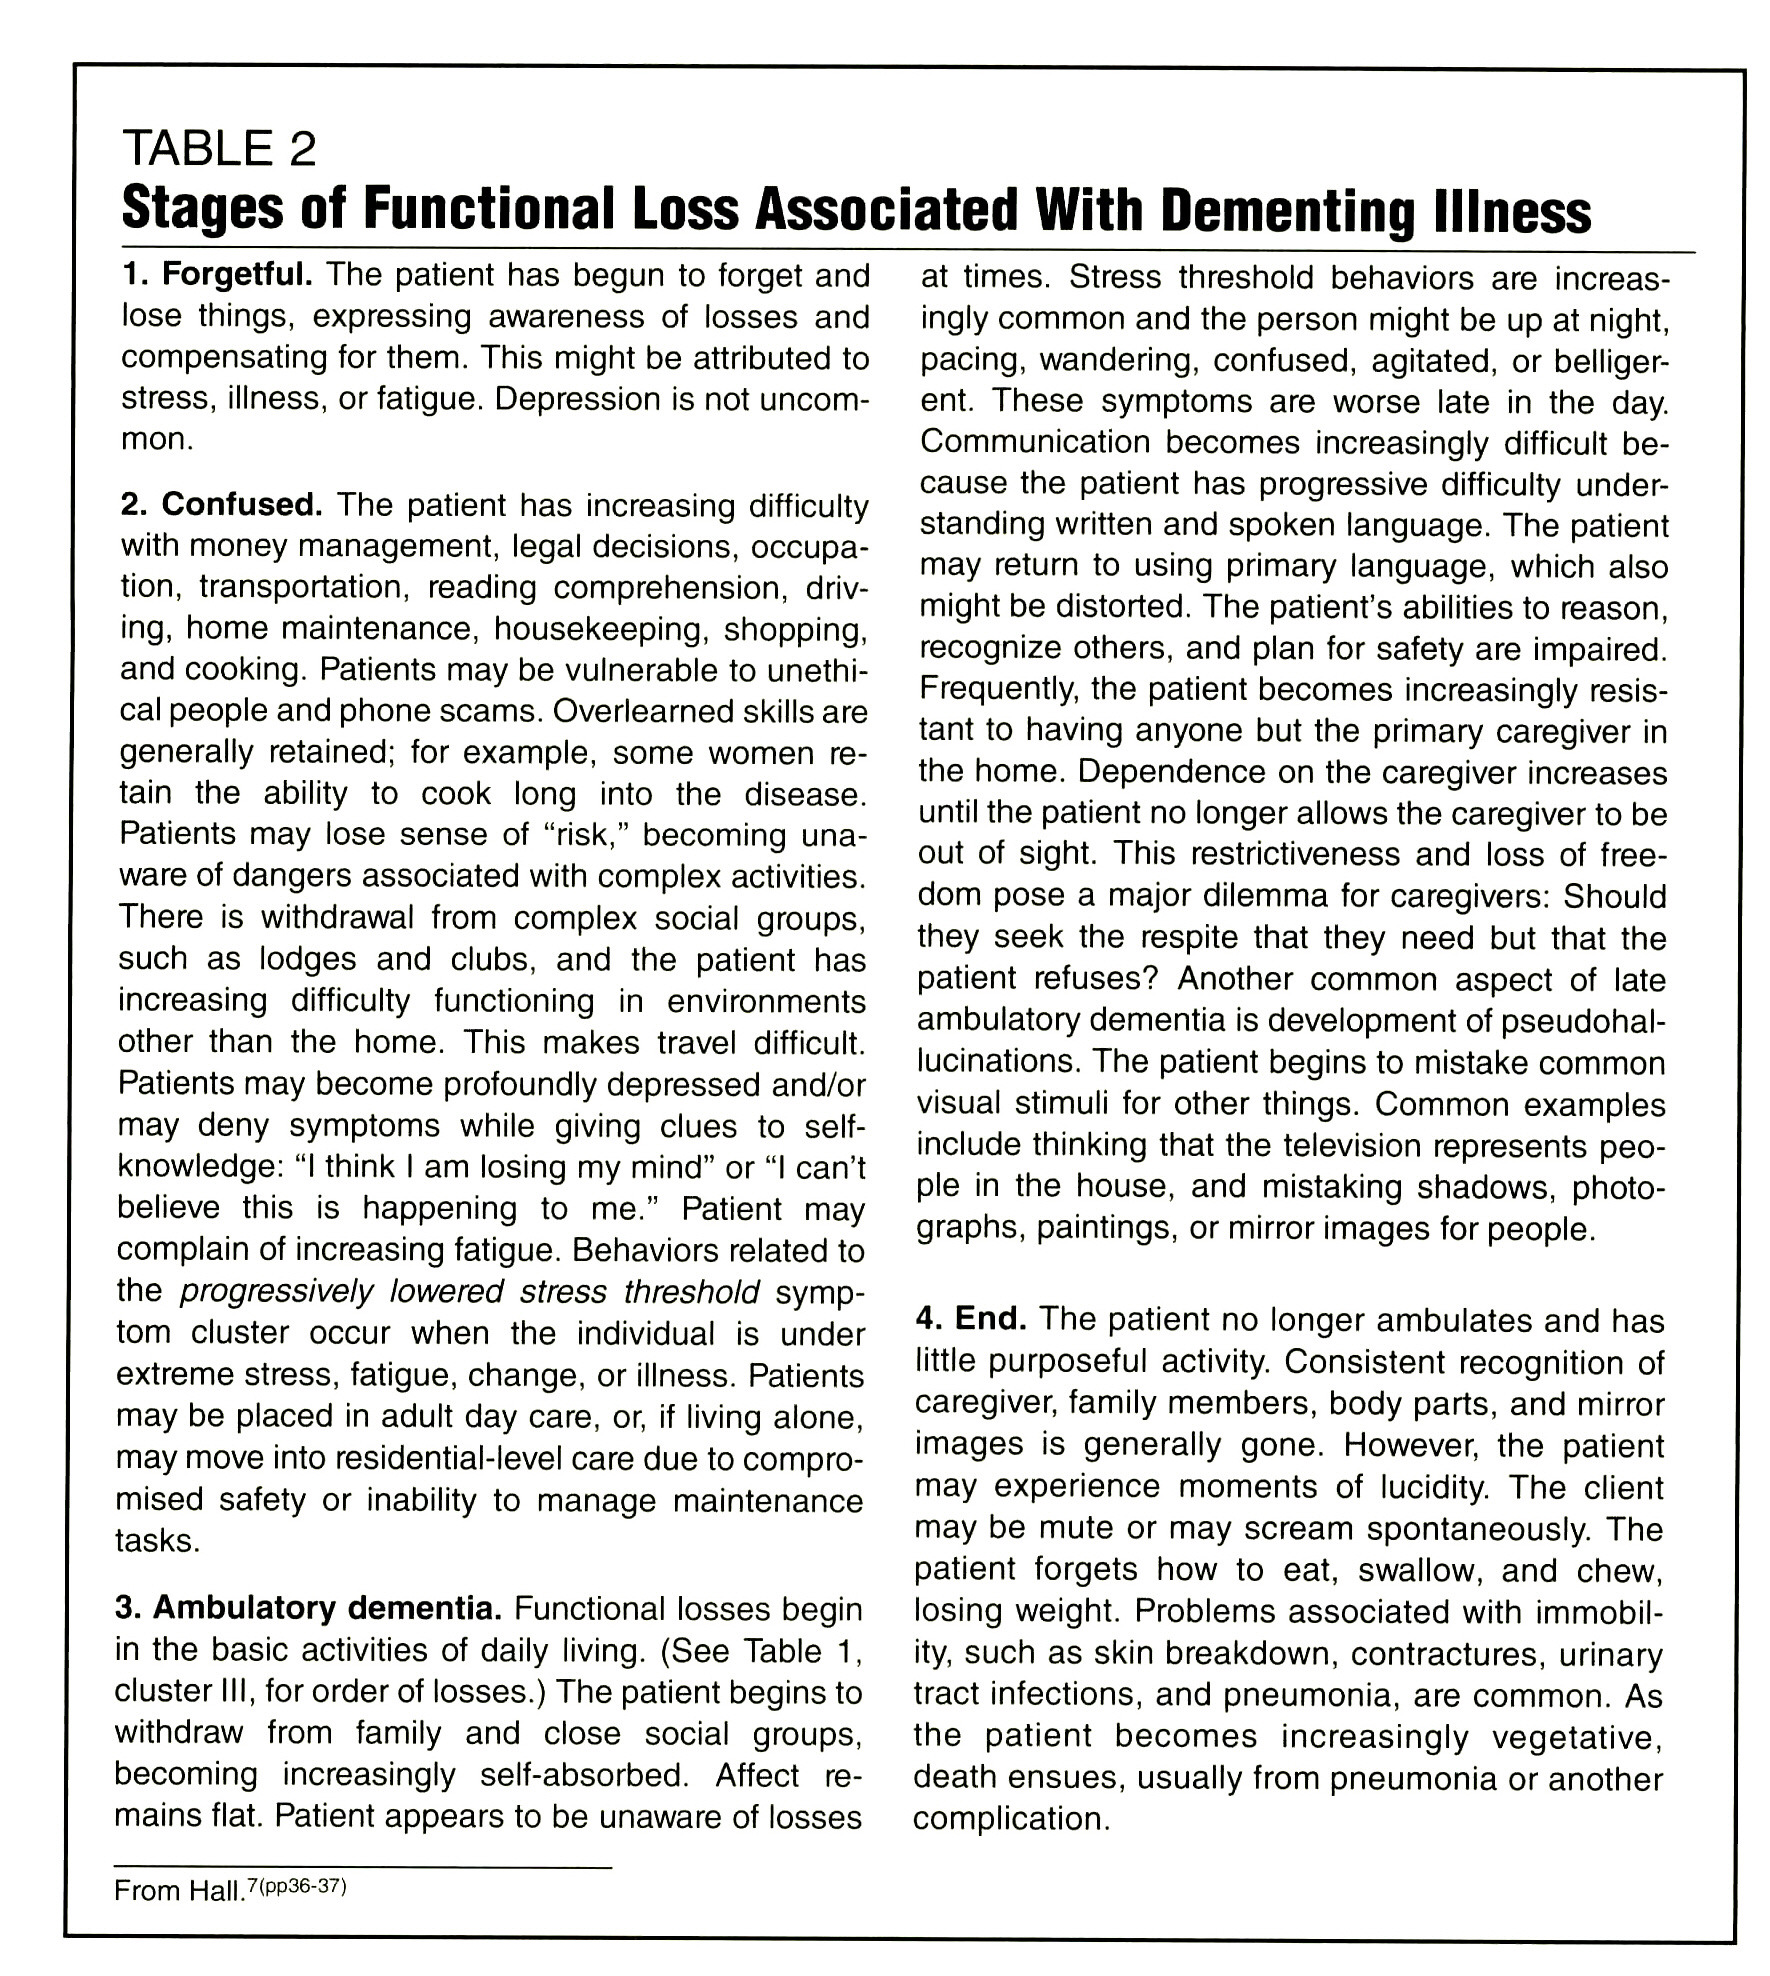 TABLE 2Stages of Functional Loss Associated With Dementing Illness